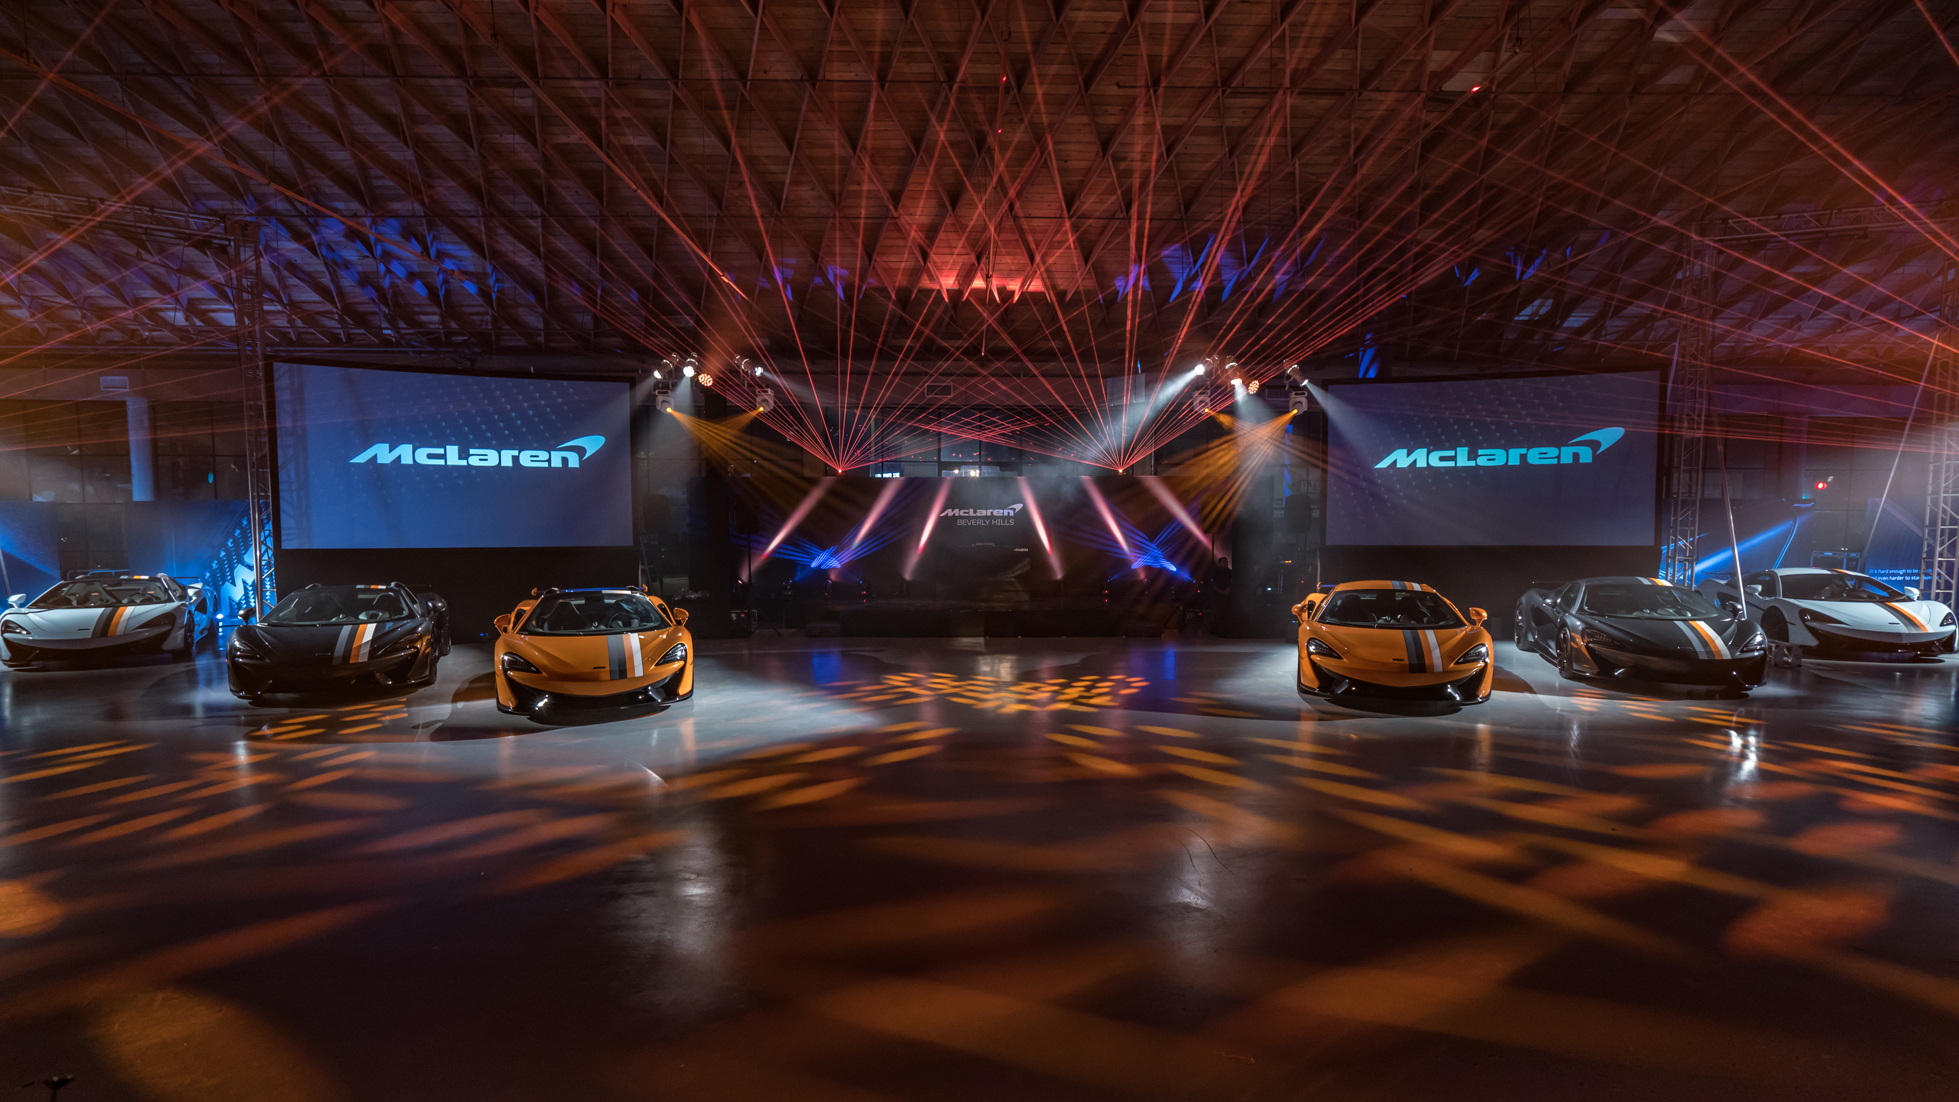 AN EVENING WITH MSO - MCLAREN BEVERLY HILLS